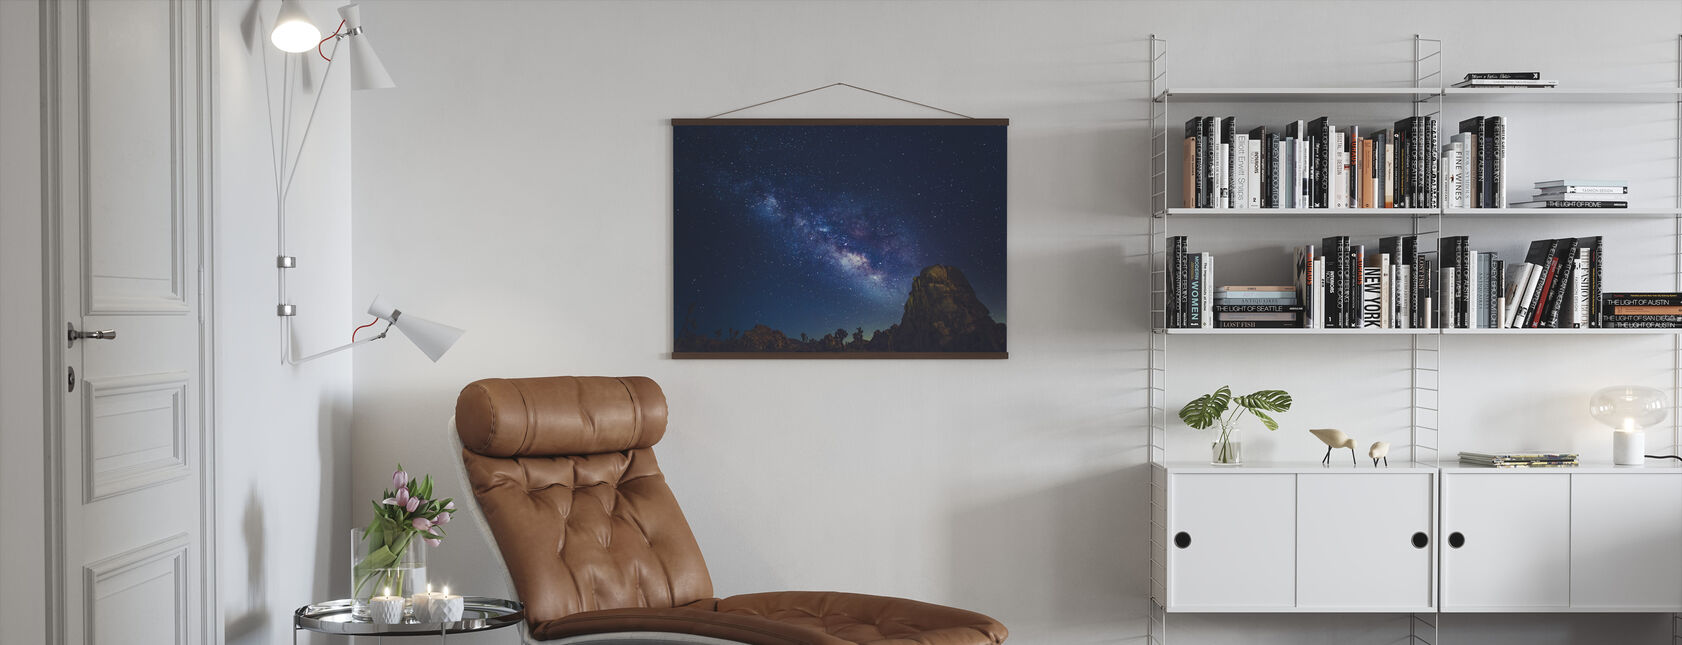 Stars of Joshua Tree, California - Poster - Living Room